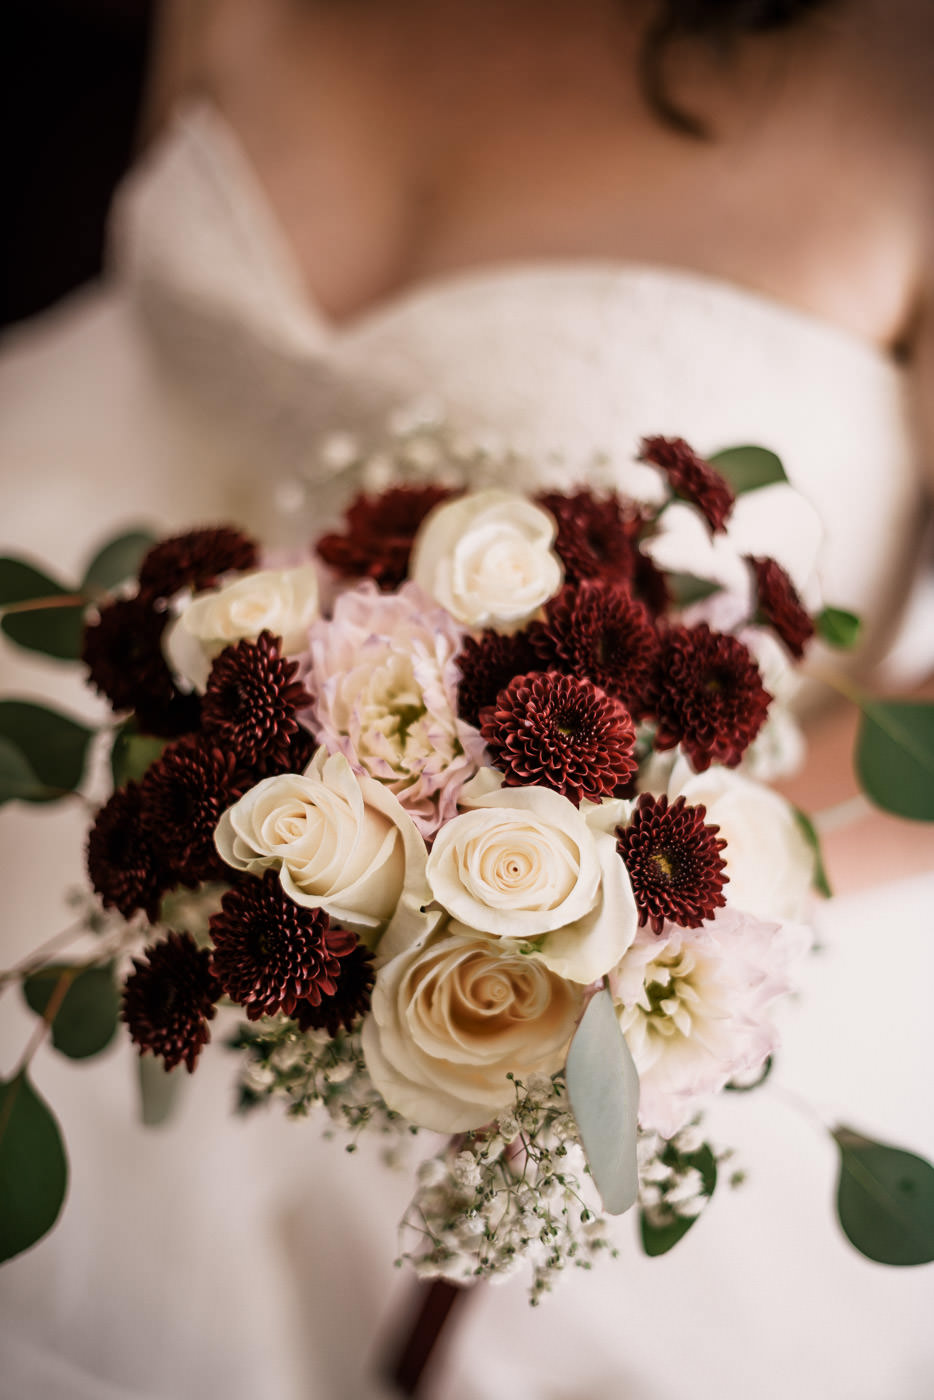 Brides classic red and white wedding bouquet.